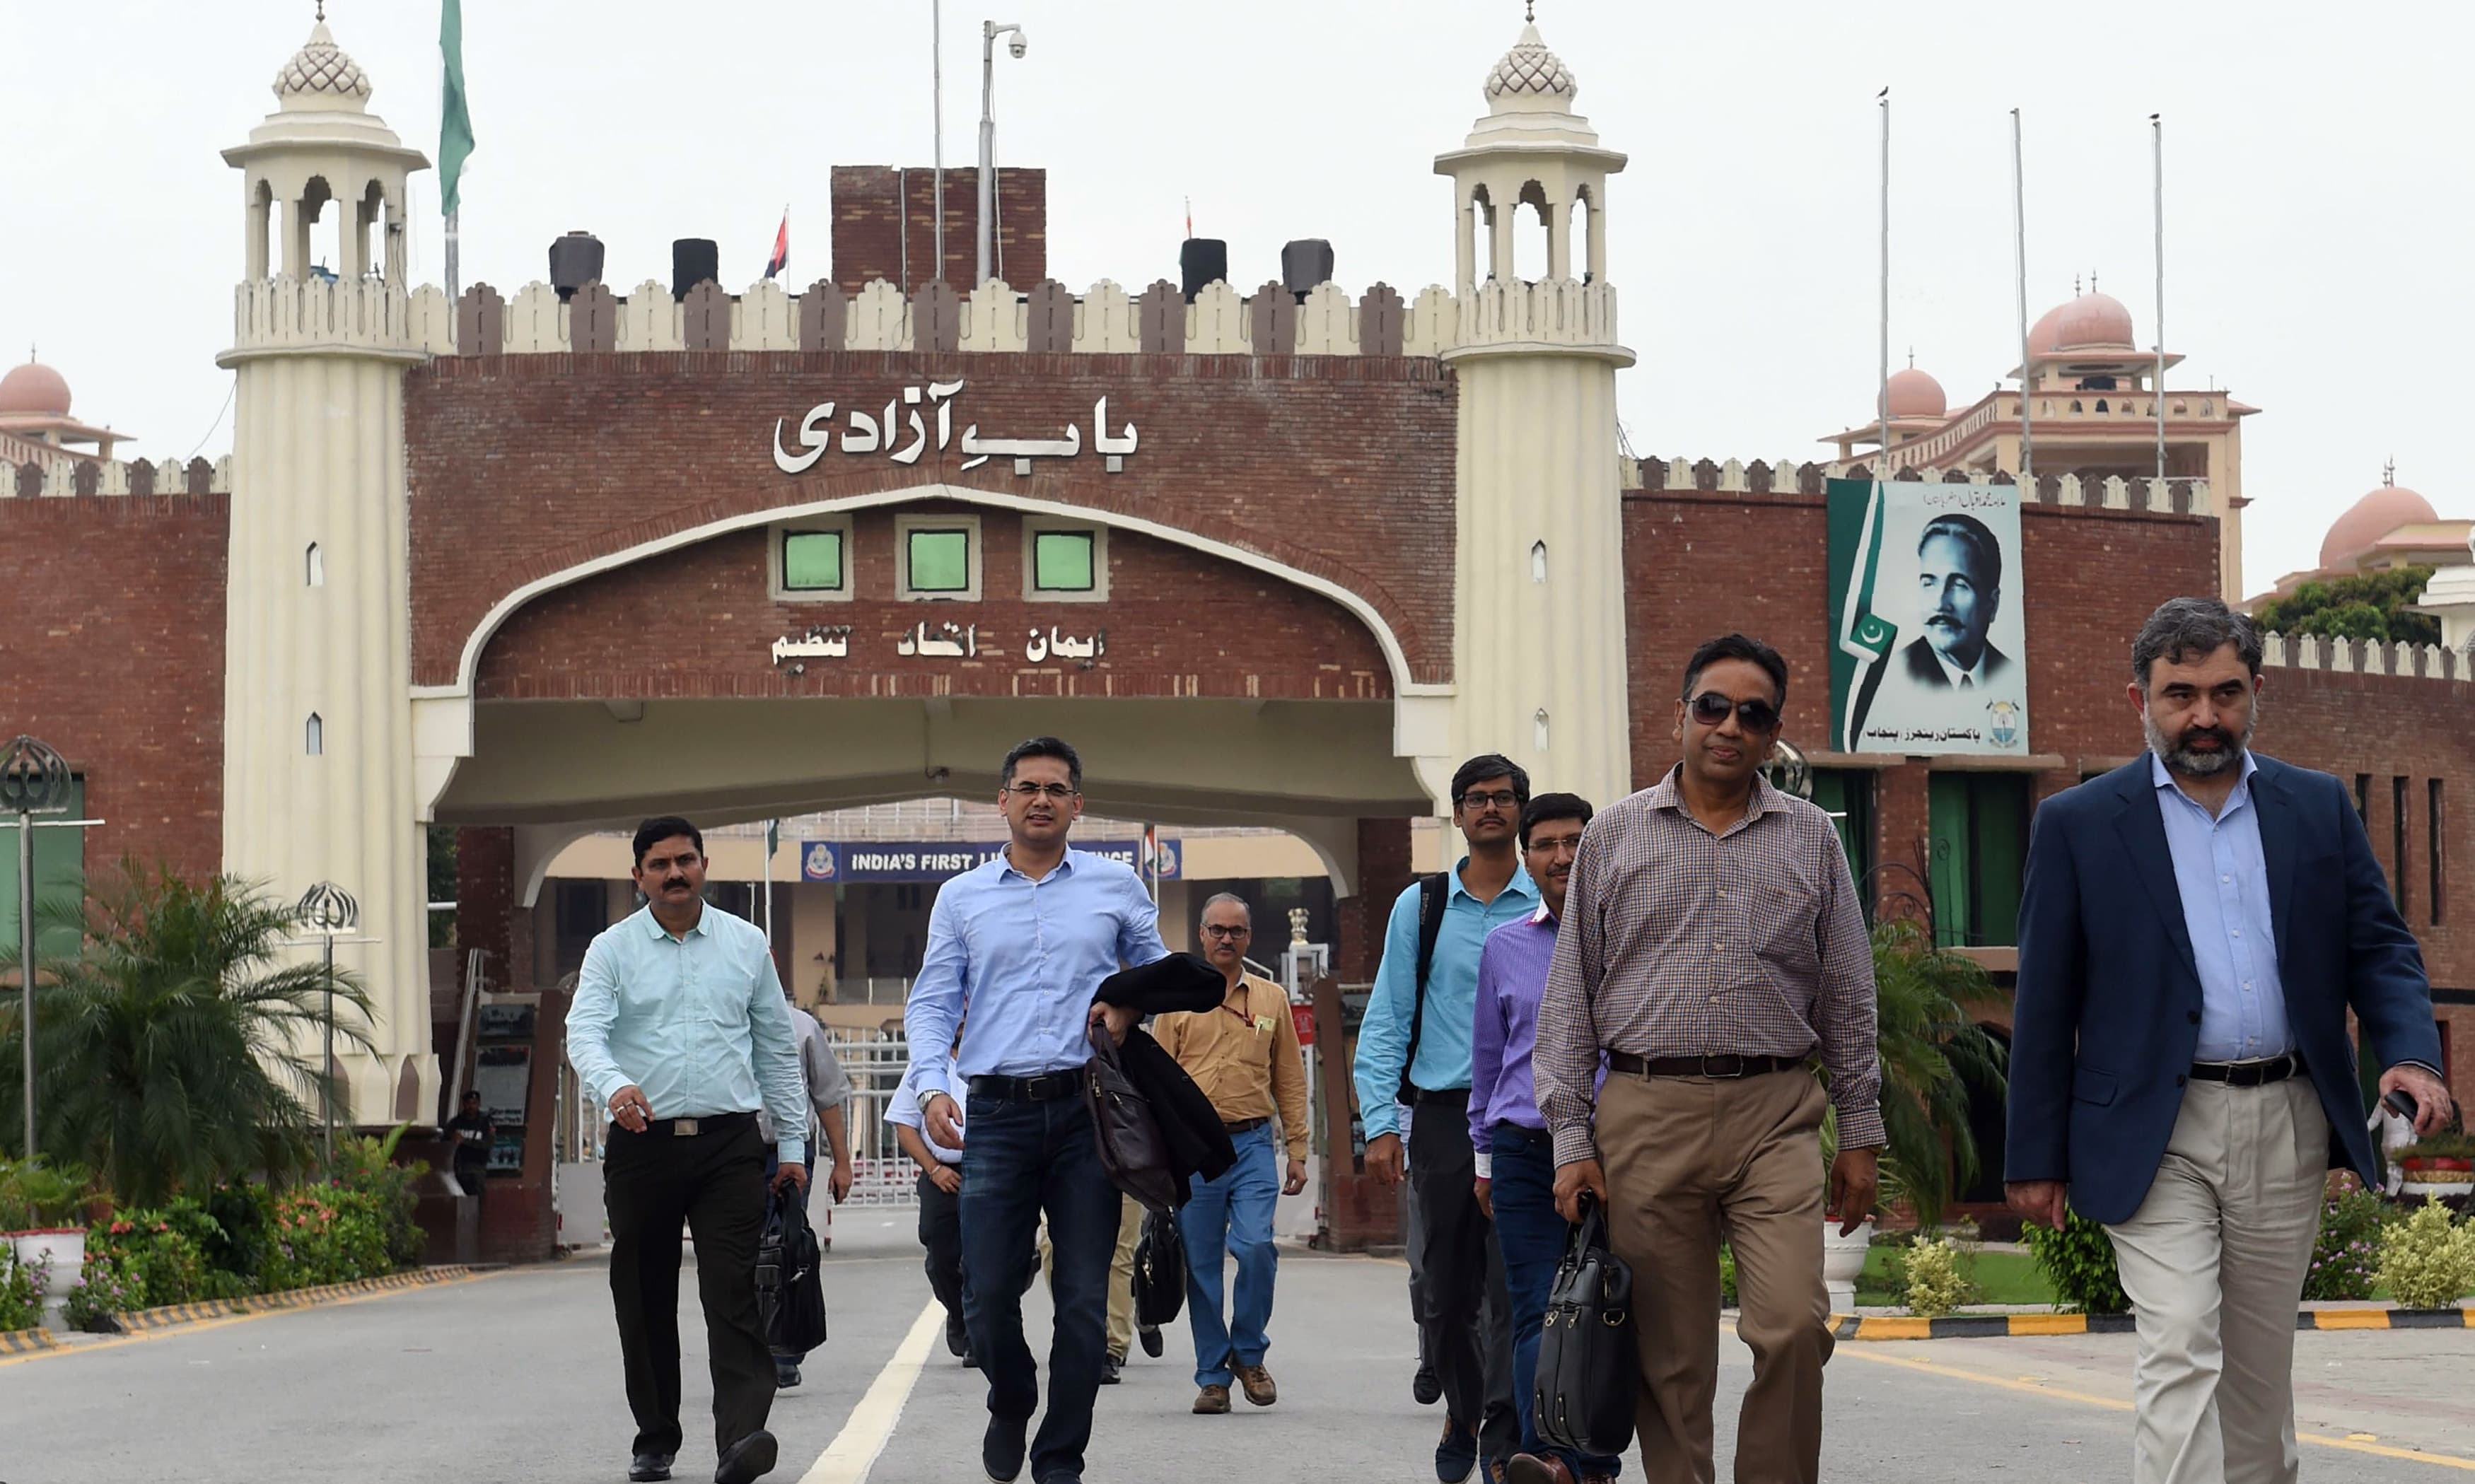 Pakistan's Commissioner for Indus Waters Syed Muhammad Mehar Ali Shah walks with Indian Indus Water Commissioner Pradeep Kumar Saxena on his arrival for a meeting to discuss Indus Waters Treaty and other issues. — AFP